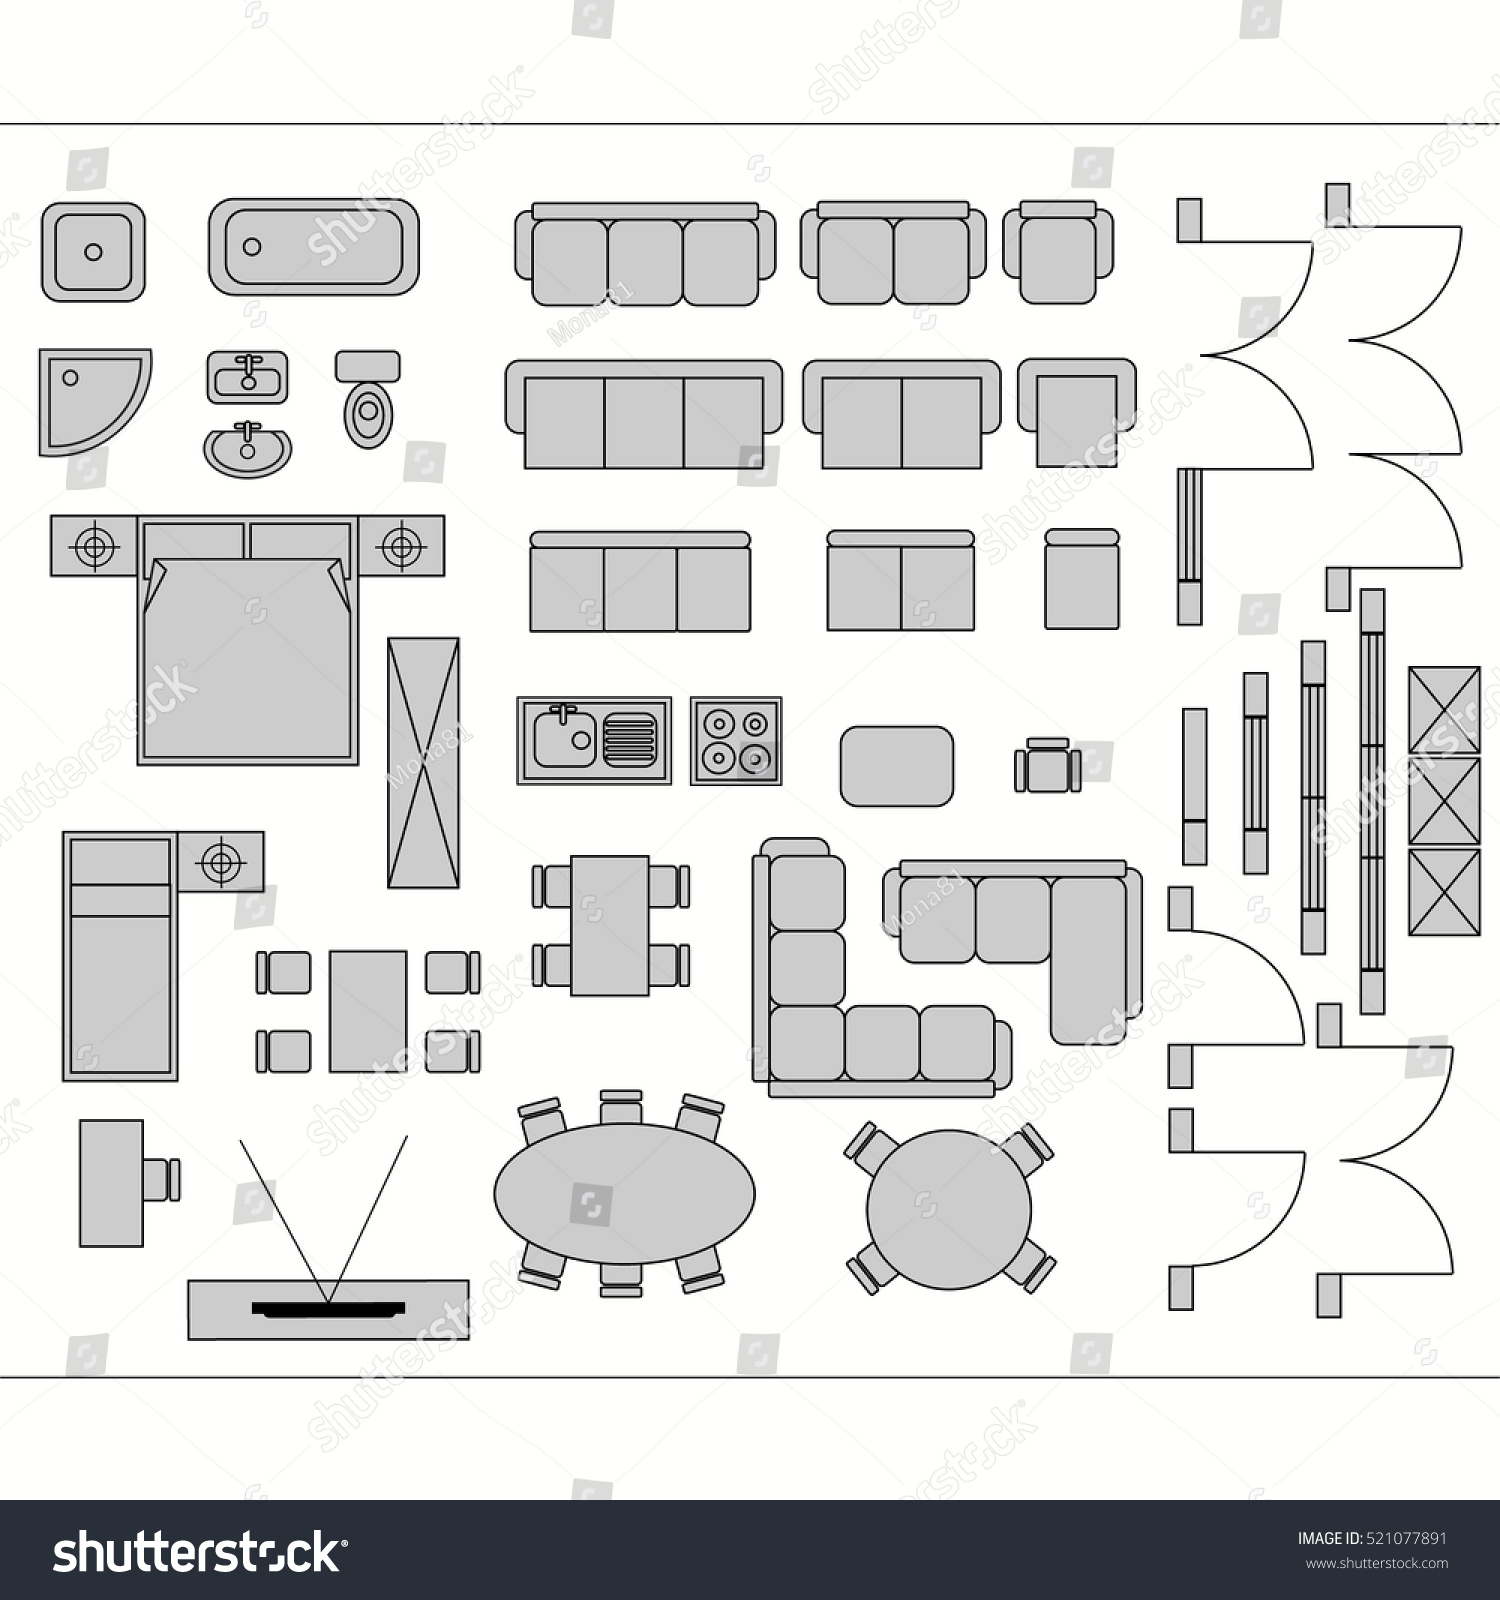 Figure 19 symbols for materials contemporary architecture drawing architectural drawing for planning construction and home improvement symbols used furniture and architecture plans icons biocorpaavc Gallery